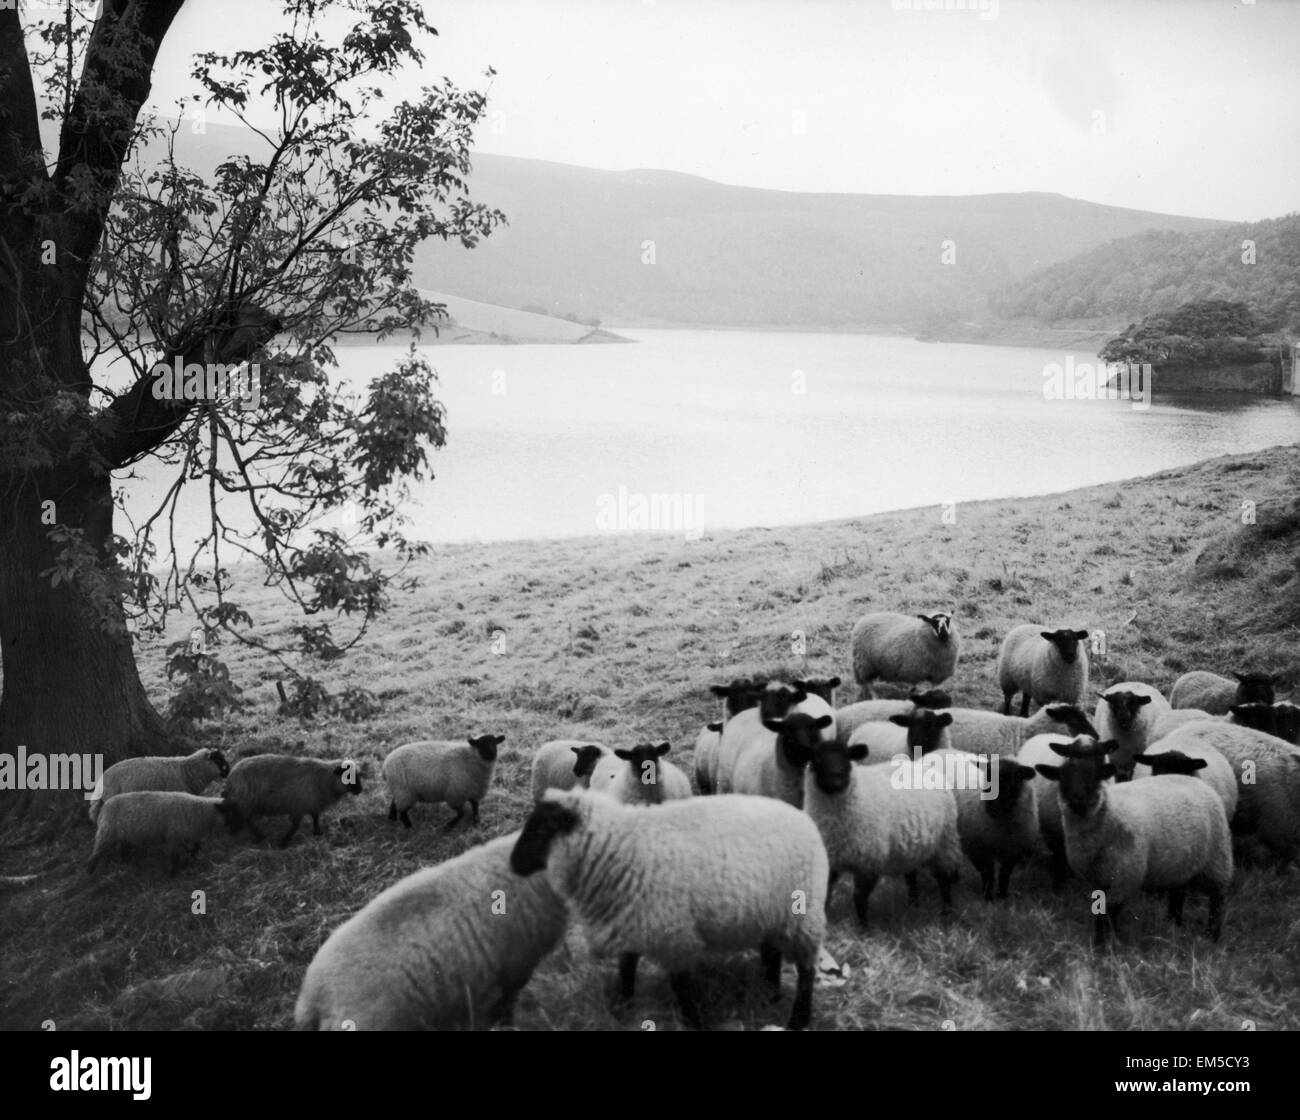 Ladybower Reservoir on the Snake Road to Sheffield. scenic - river lake hills trees Animals - Sheep February 1975. - Stock Image